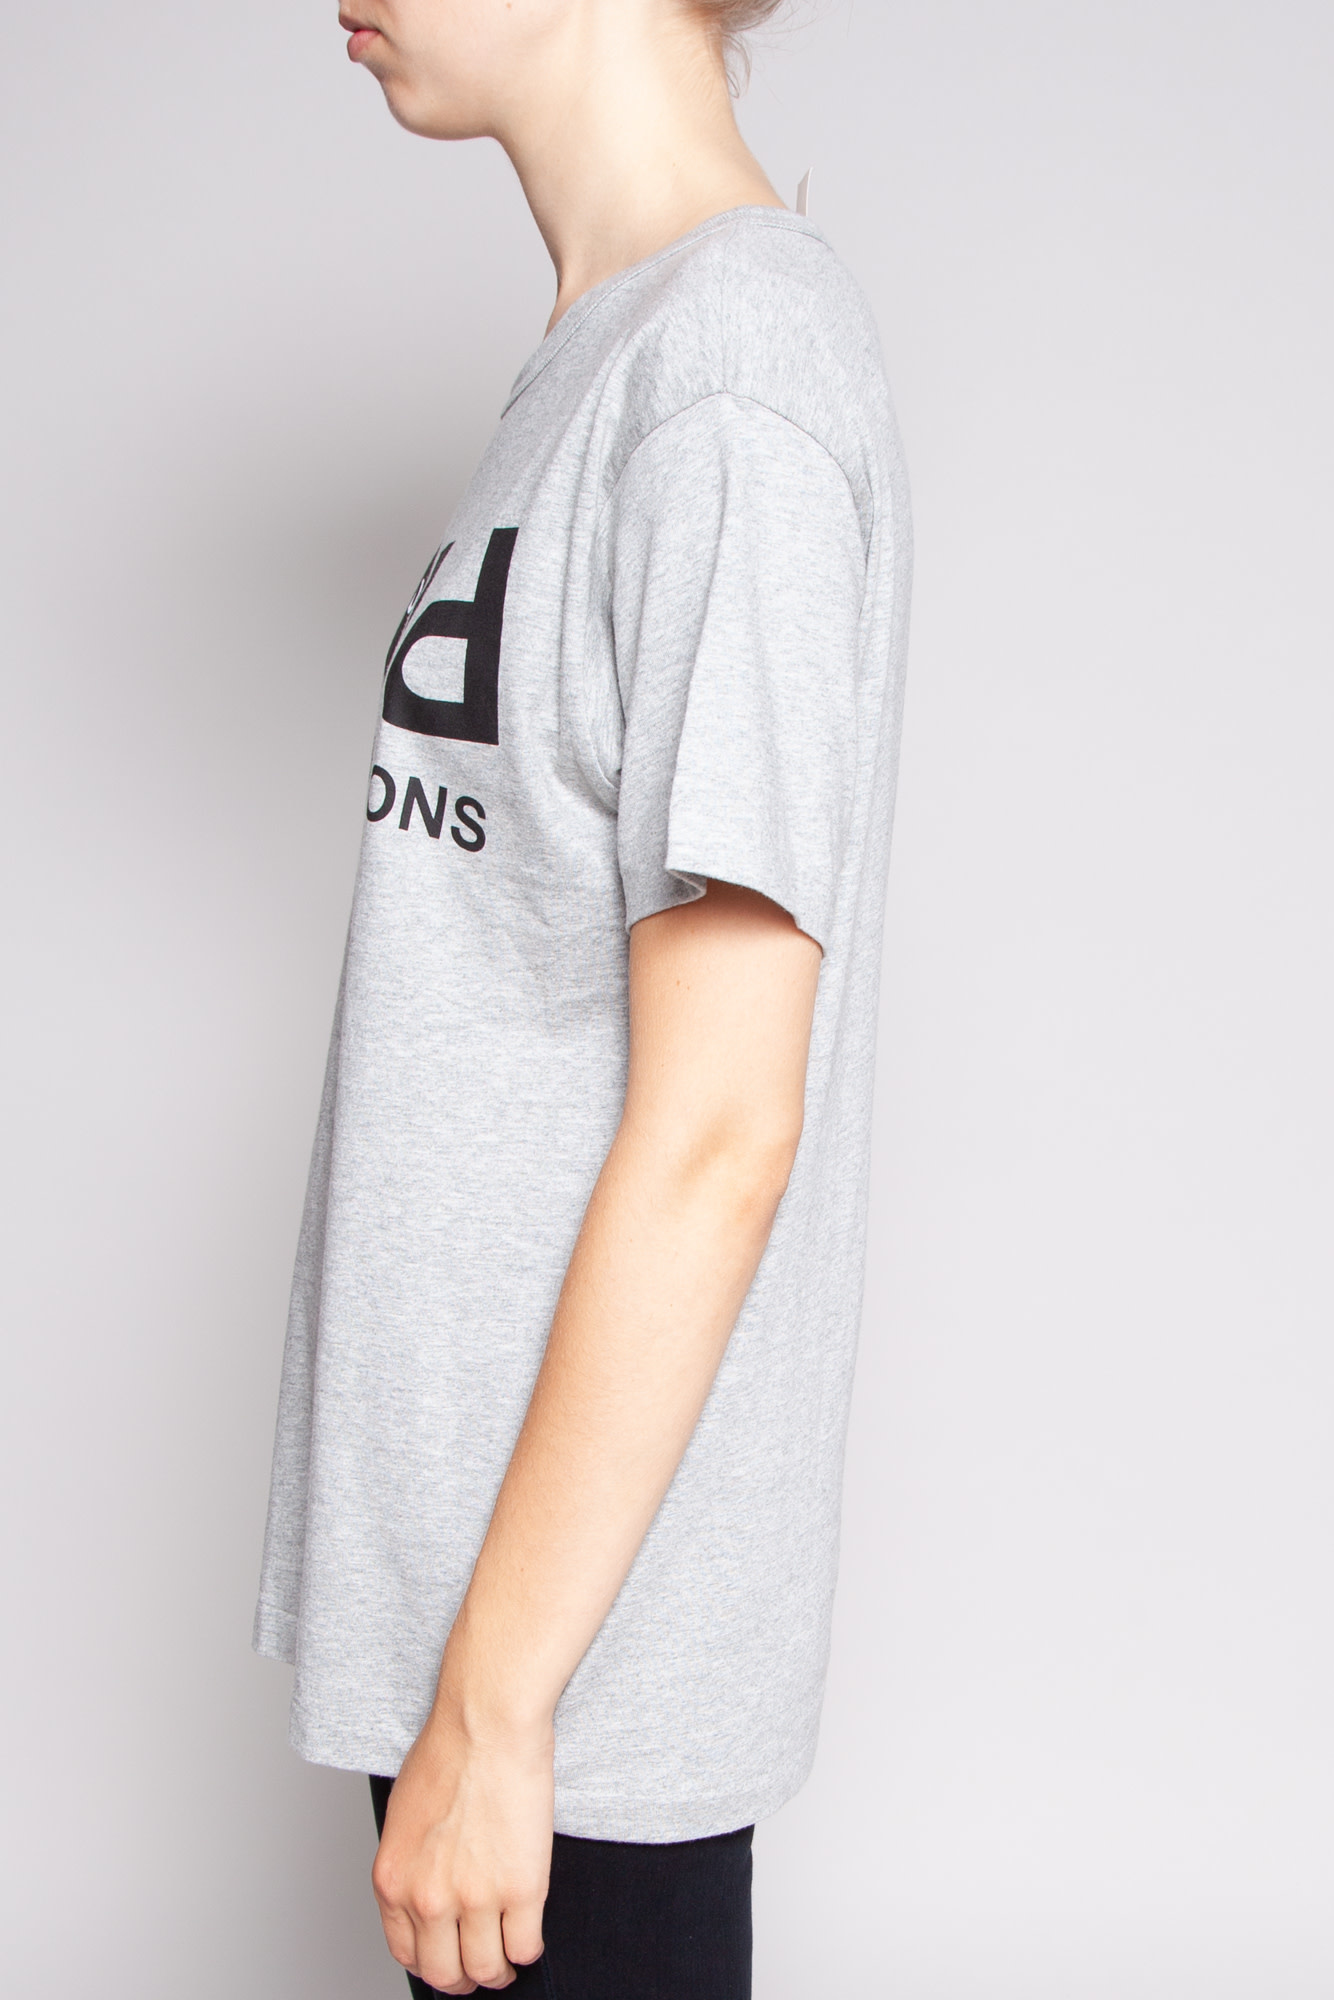 Comme Des Garçons PLAY GRAY PRINT T-SHIRT - NEW WITH TAG